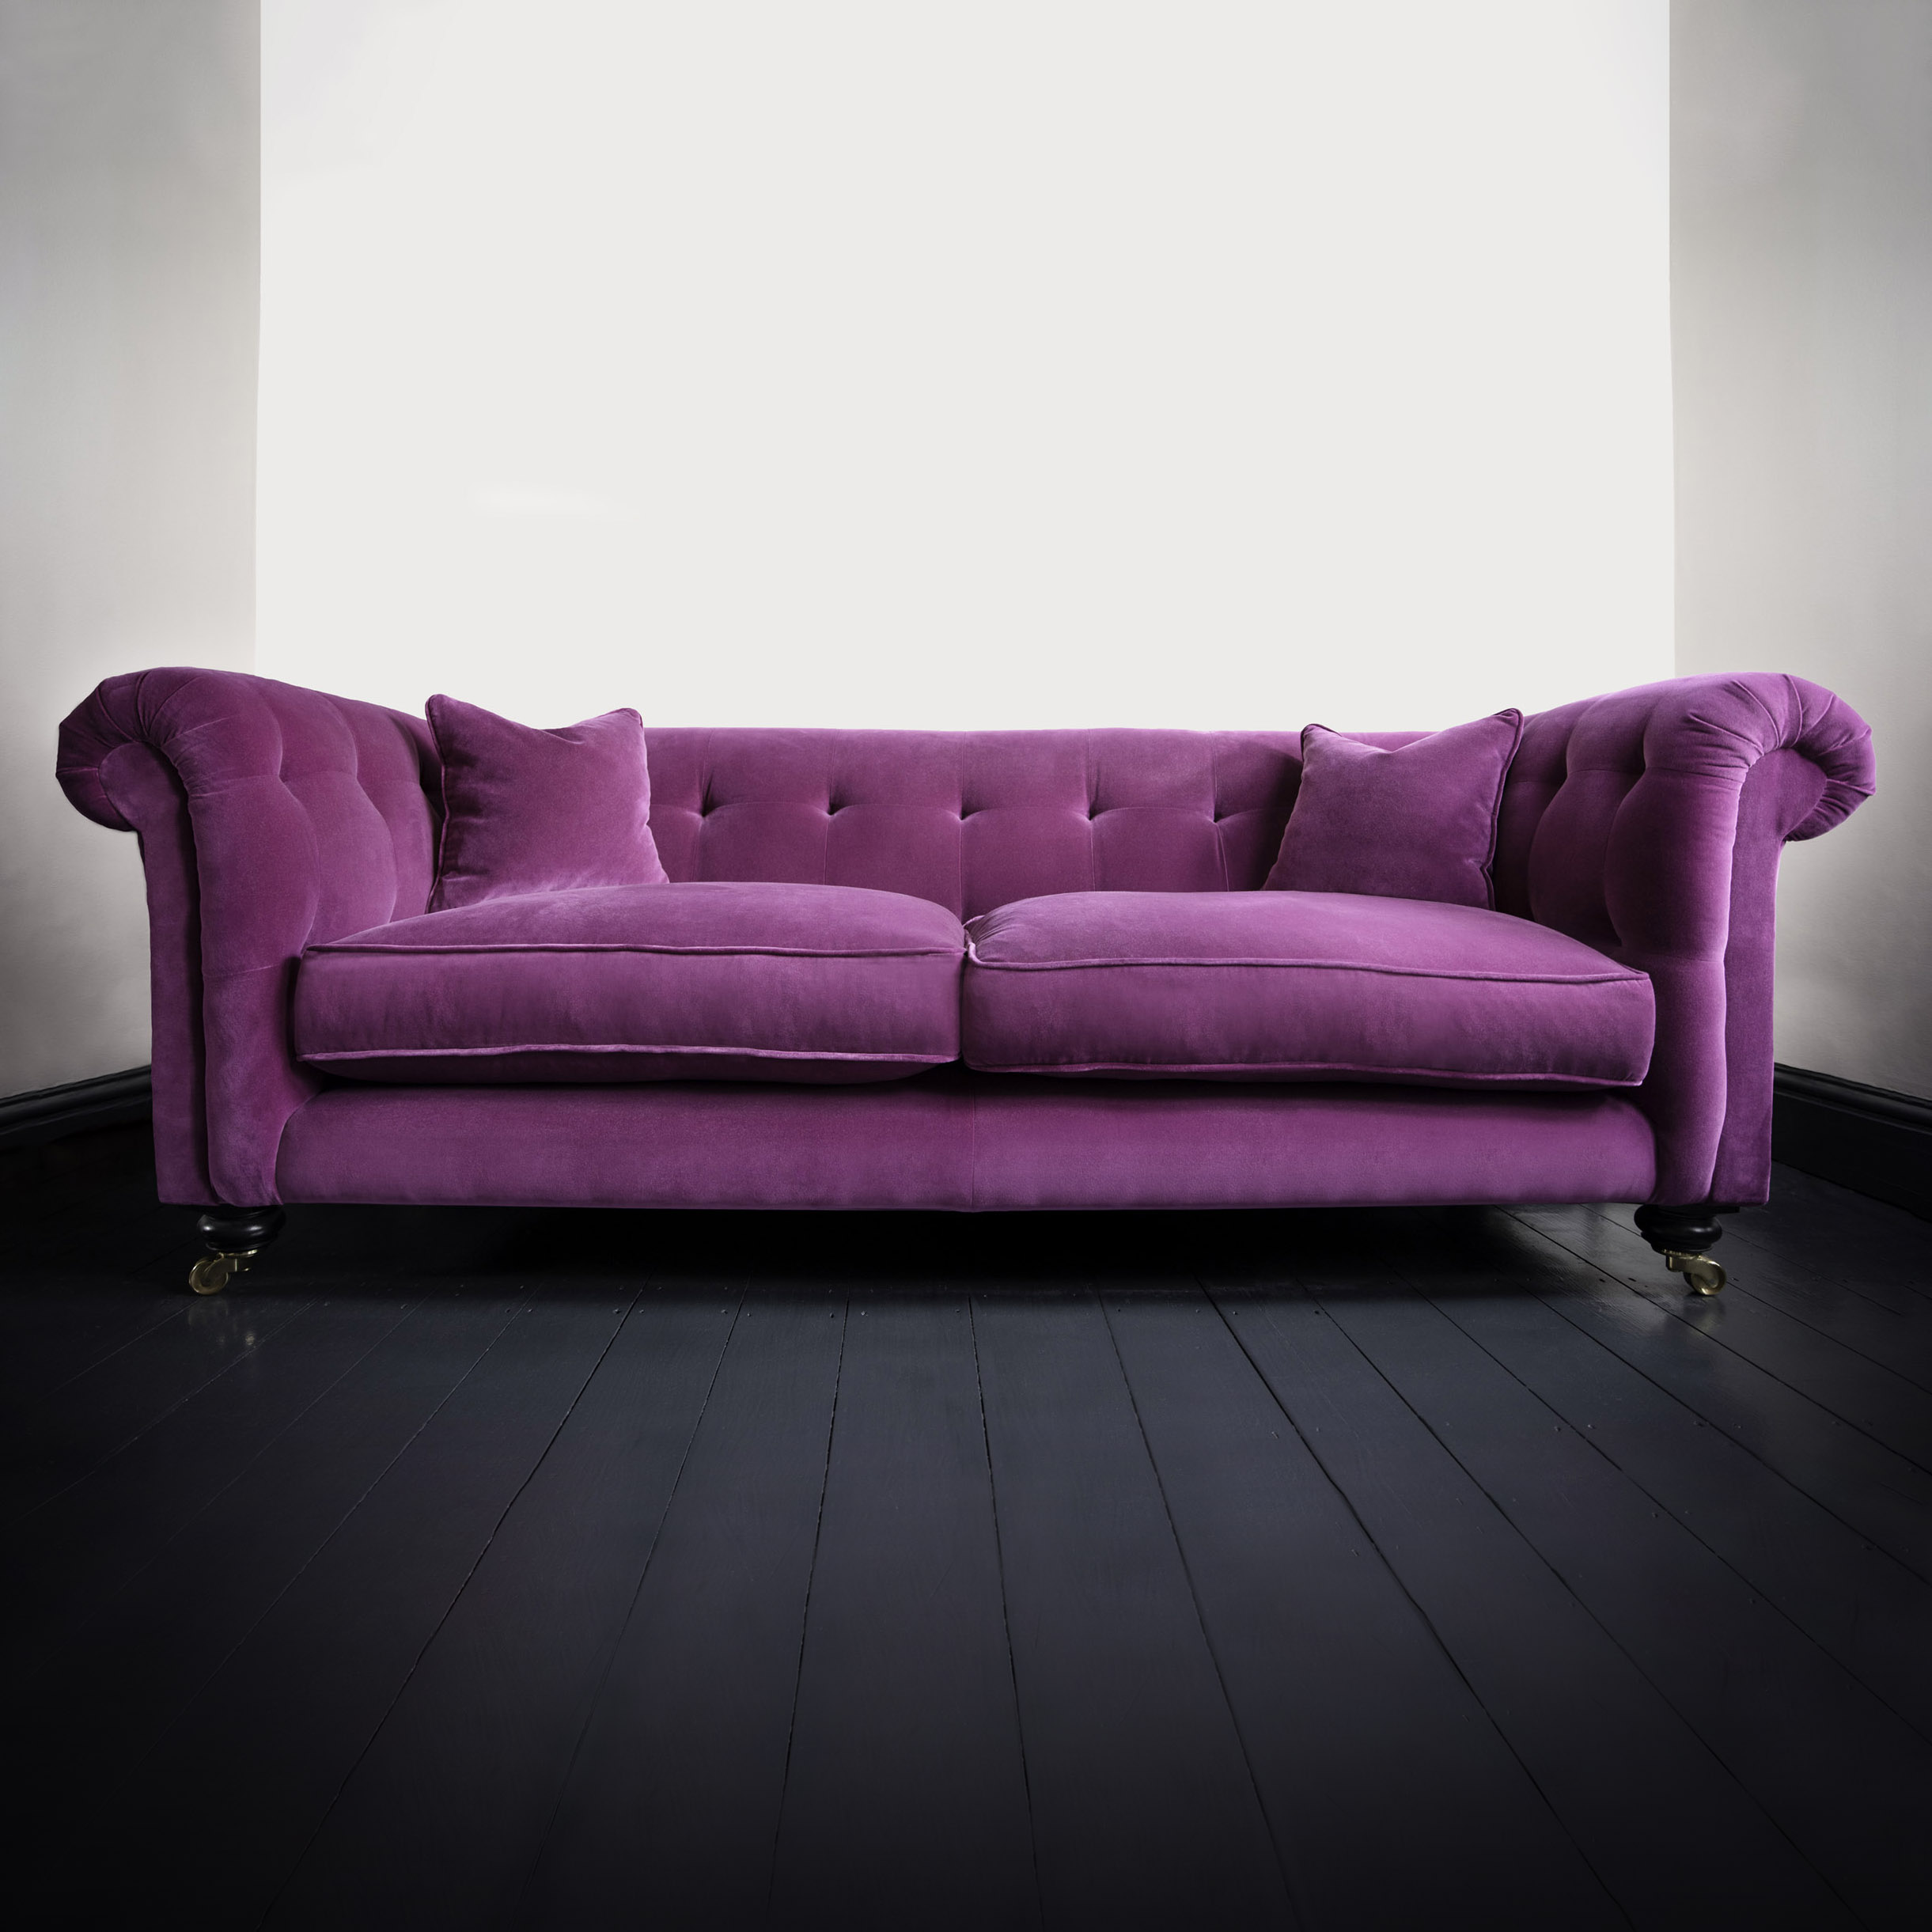 Sofas & Chairs category image